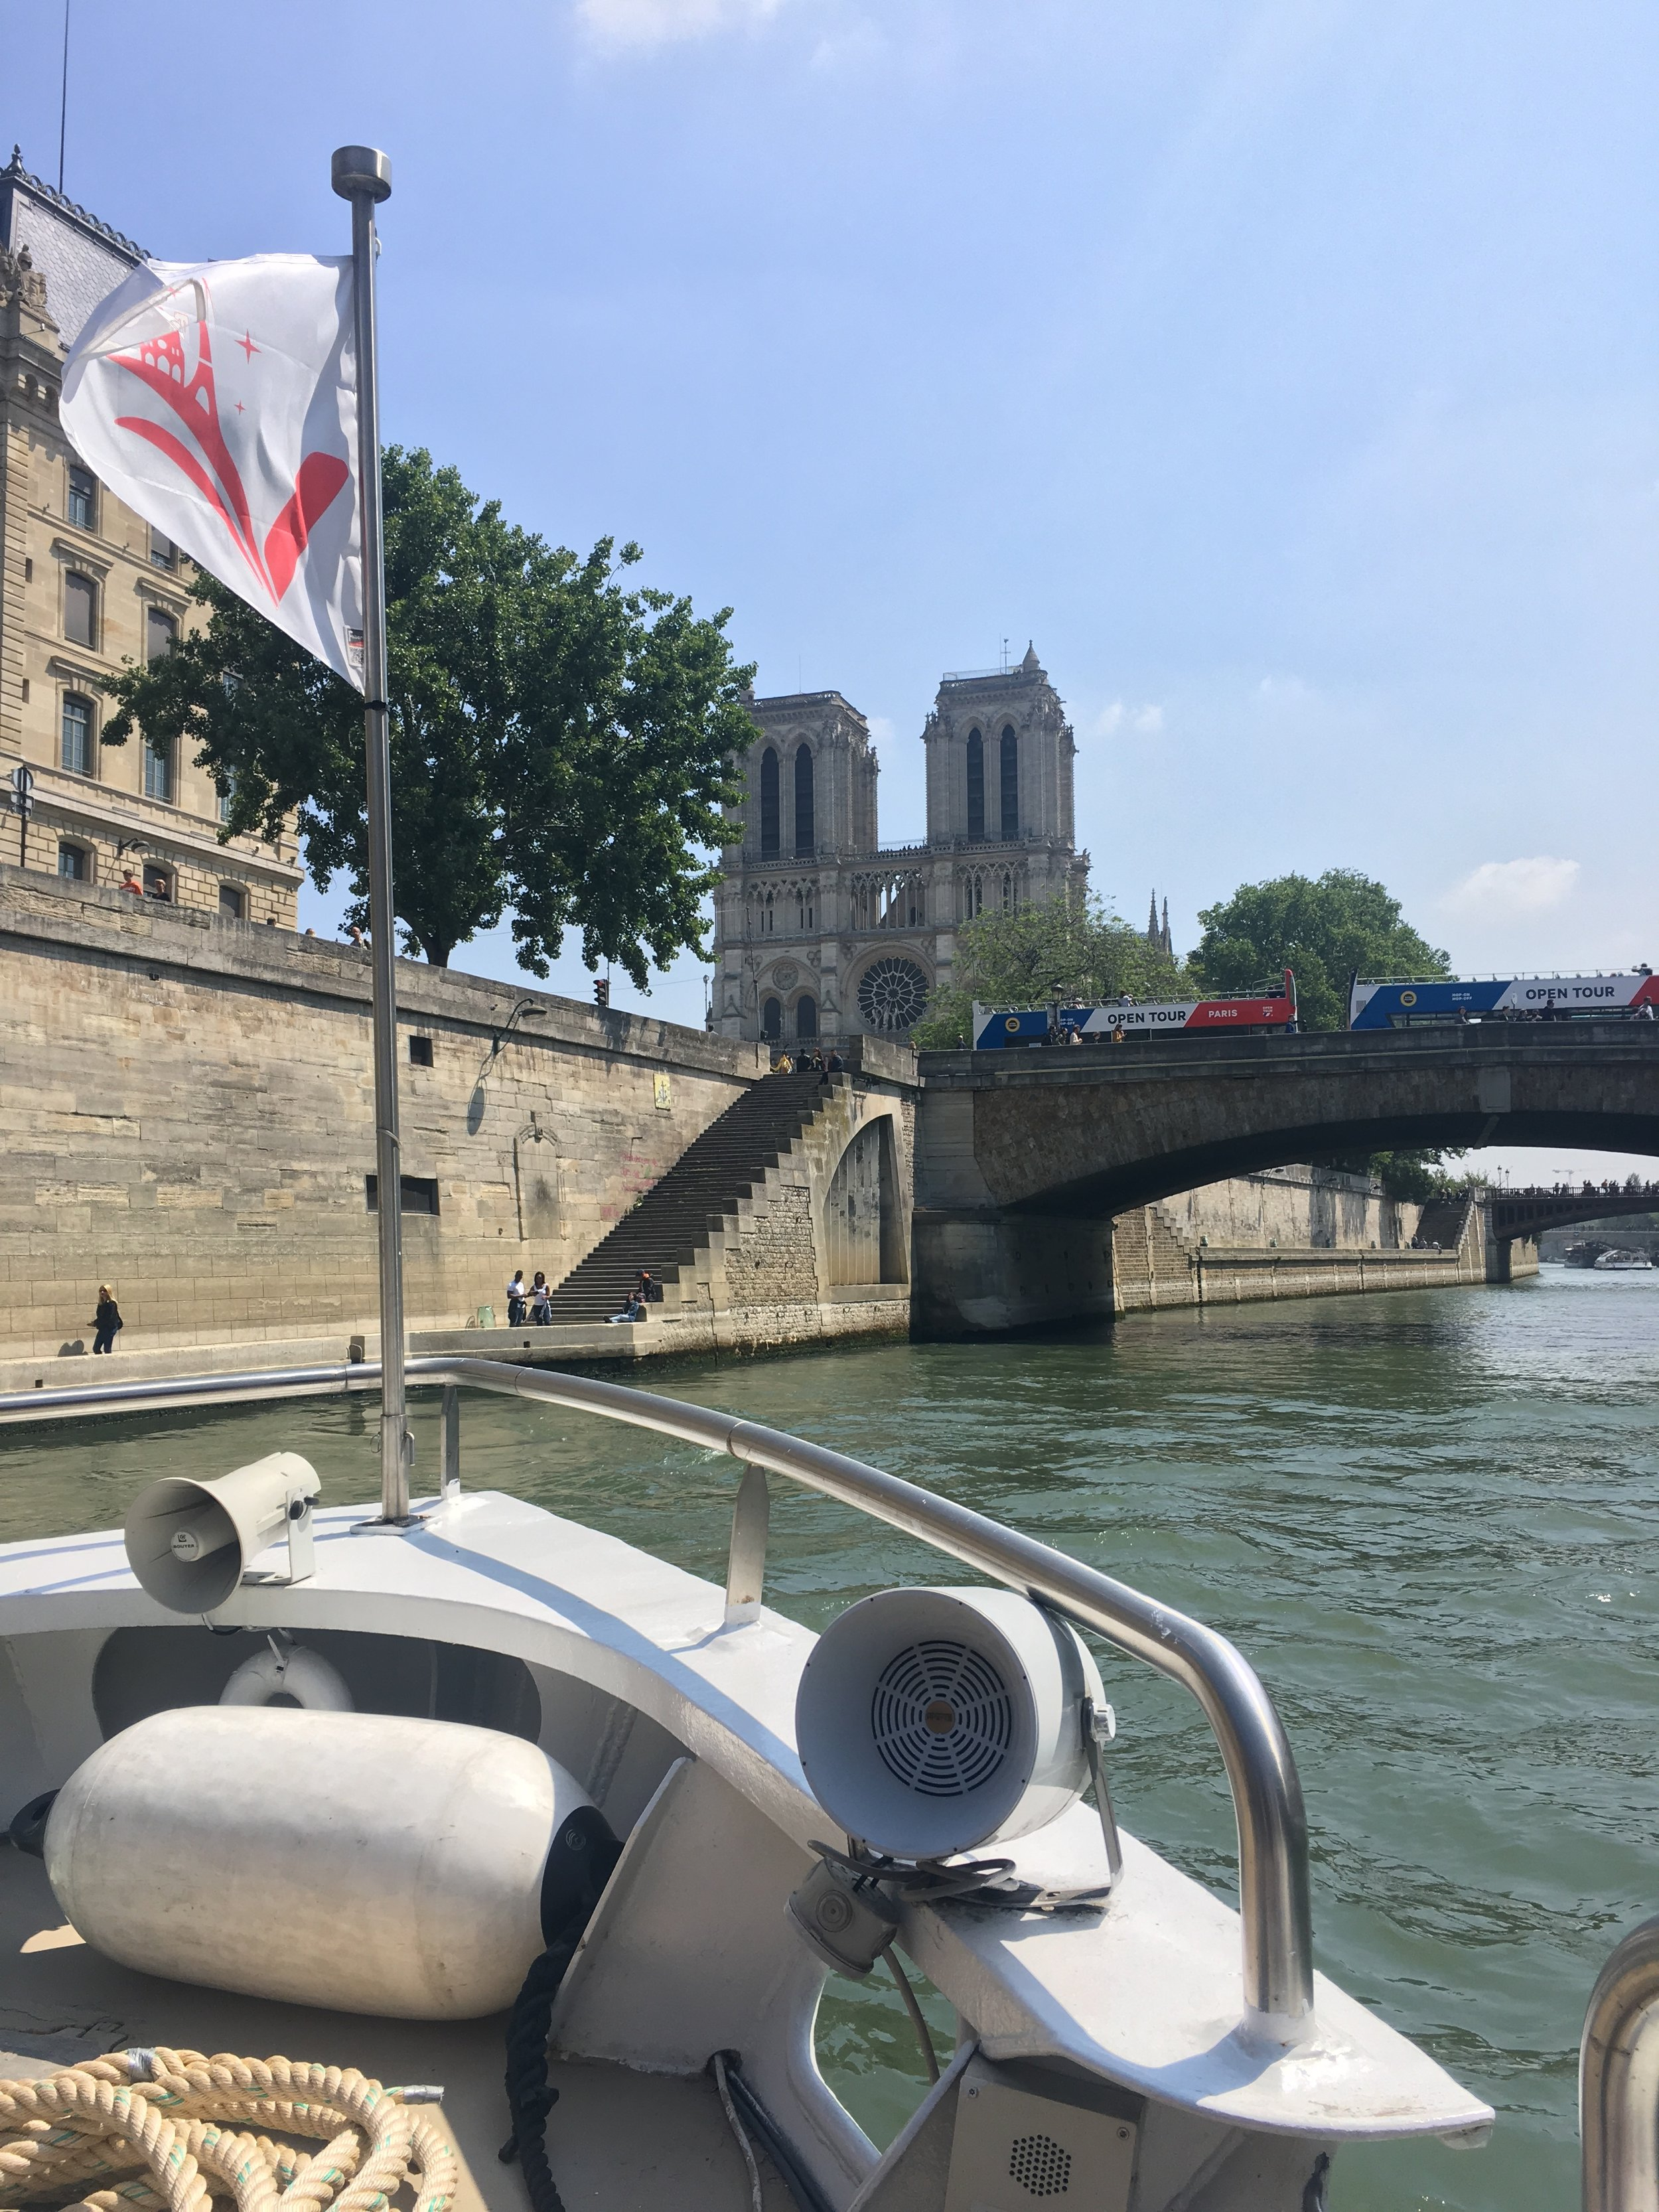 We took a boat from the Eiffel Tower down to Nôtre Dame Cathedral.